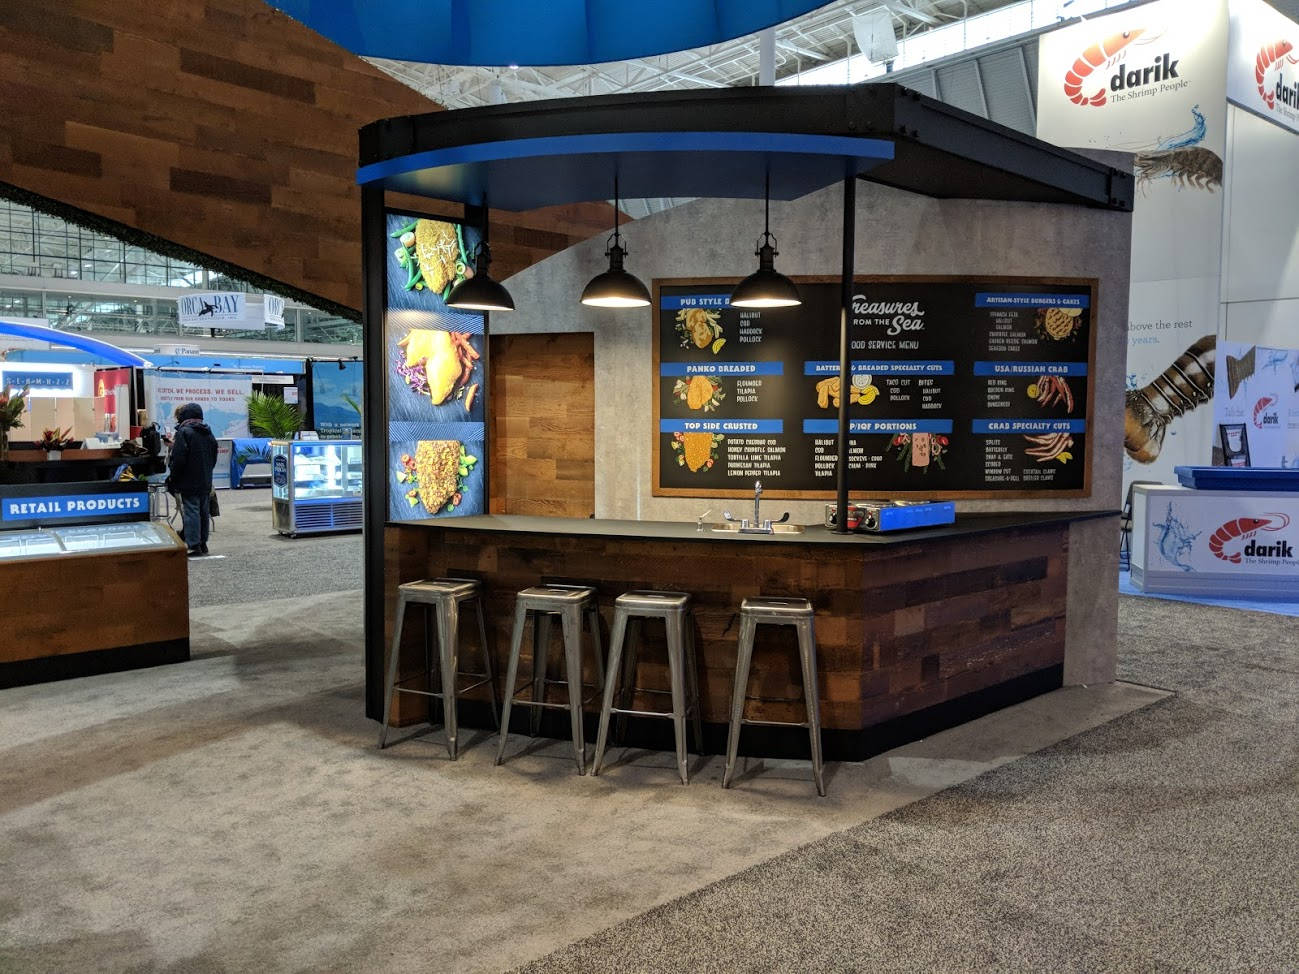 Custom Exhibit for Odyssey Foods. Design by Exhibits Northwest. Build by Classic Exhibits Inc.